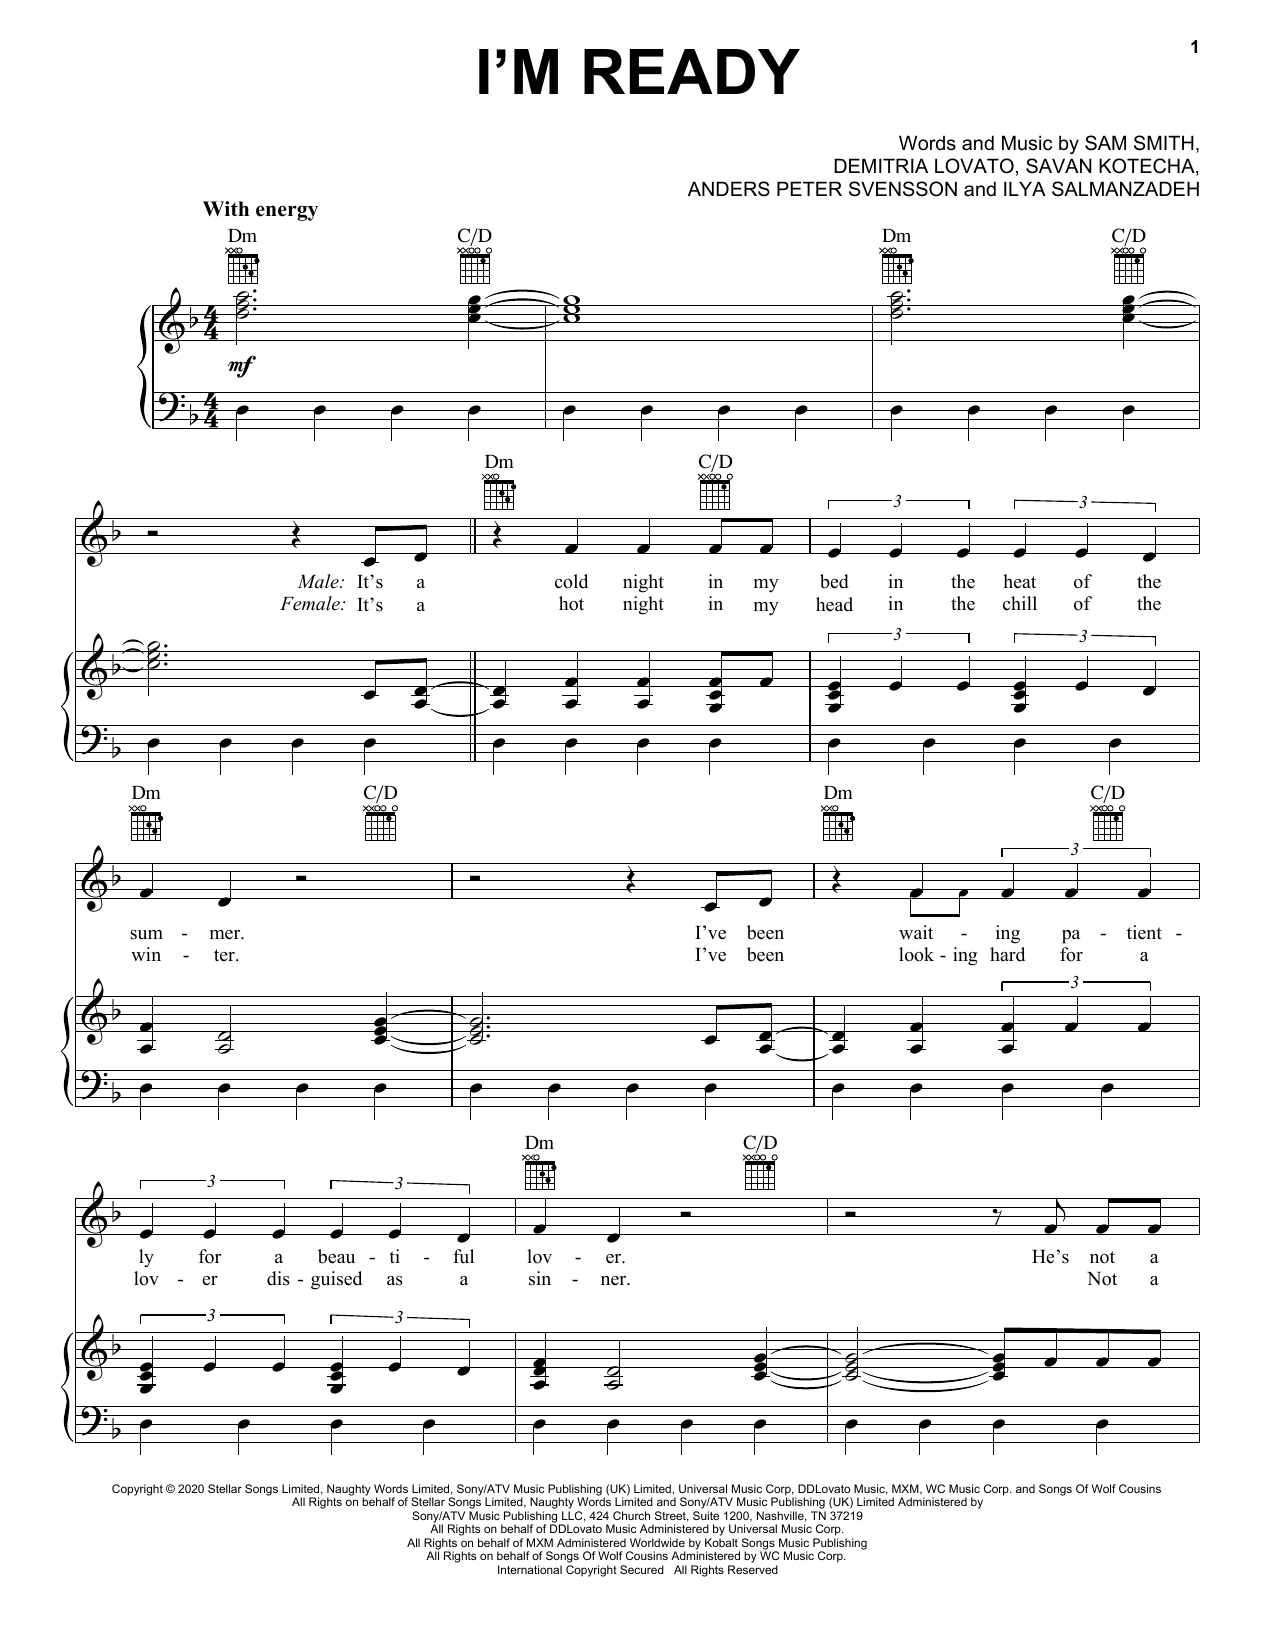 Sam Smith & Demi Lovato I'm Ready sheet music notes and chords. Download Printable PDF.